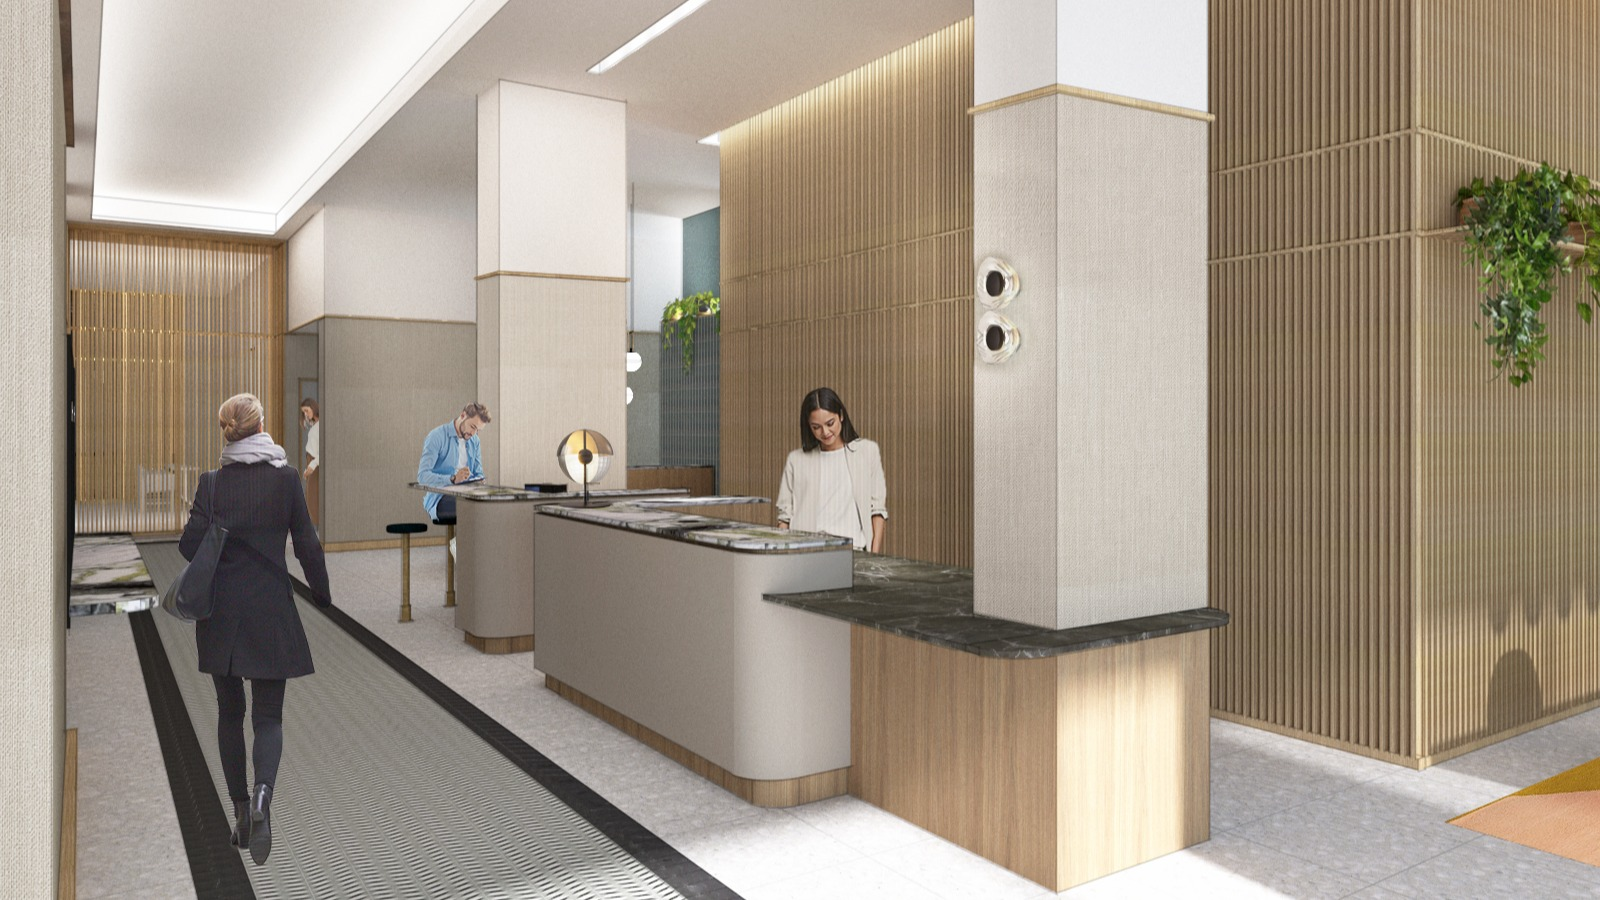 Rendering of building lobby. With concierge behind the counter at reception.